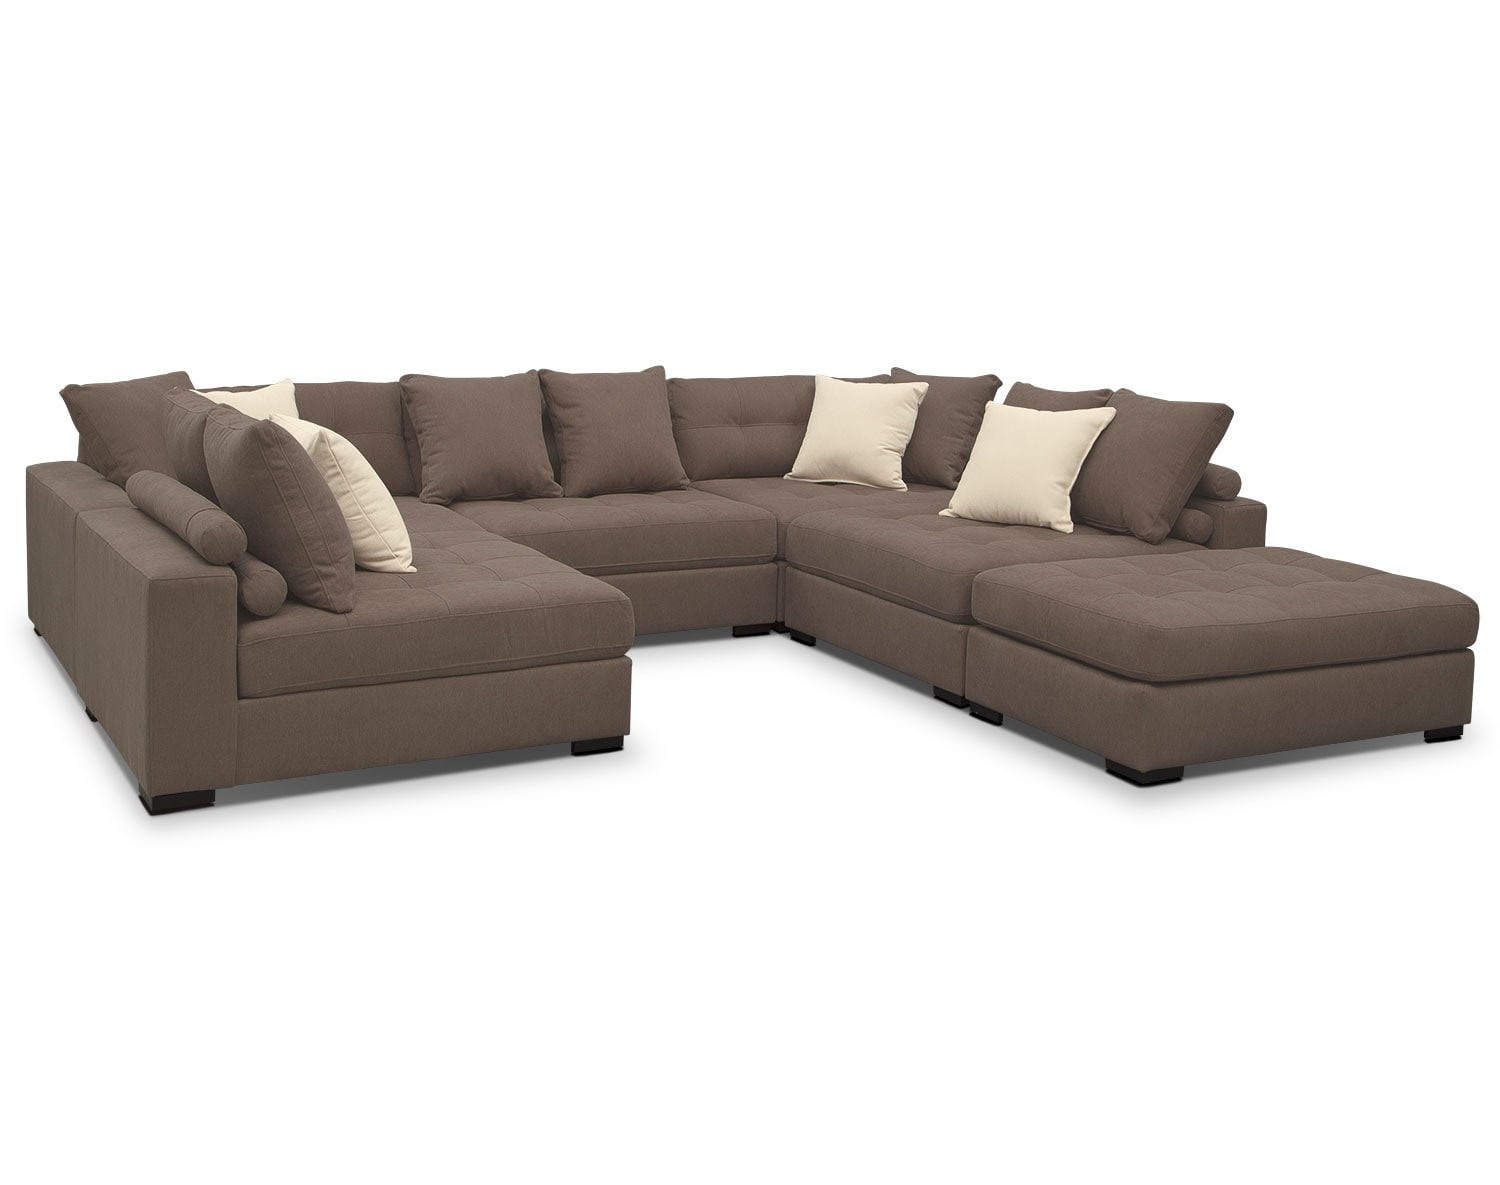 The Venti Mocha Sectional Collection